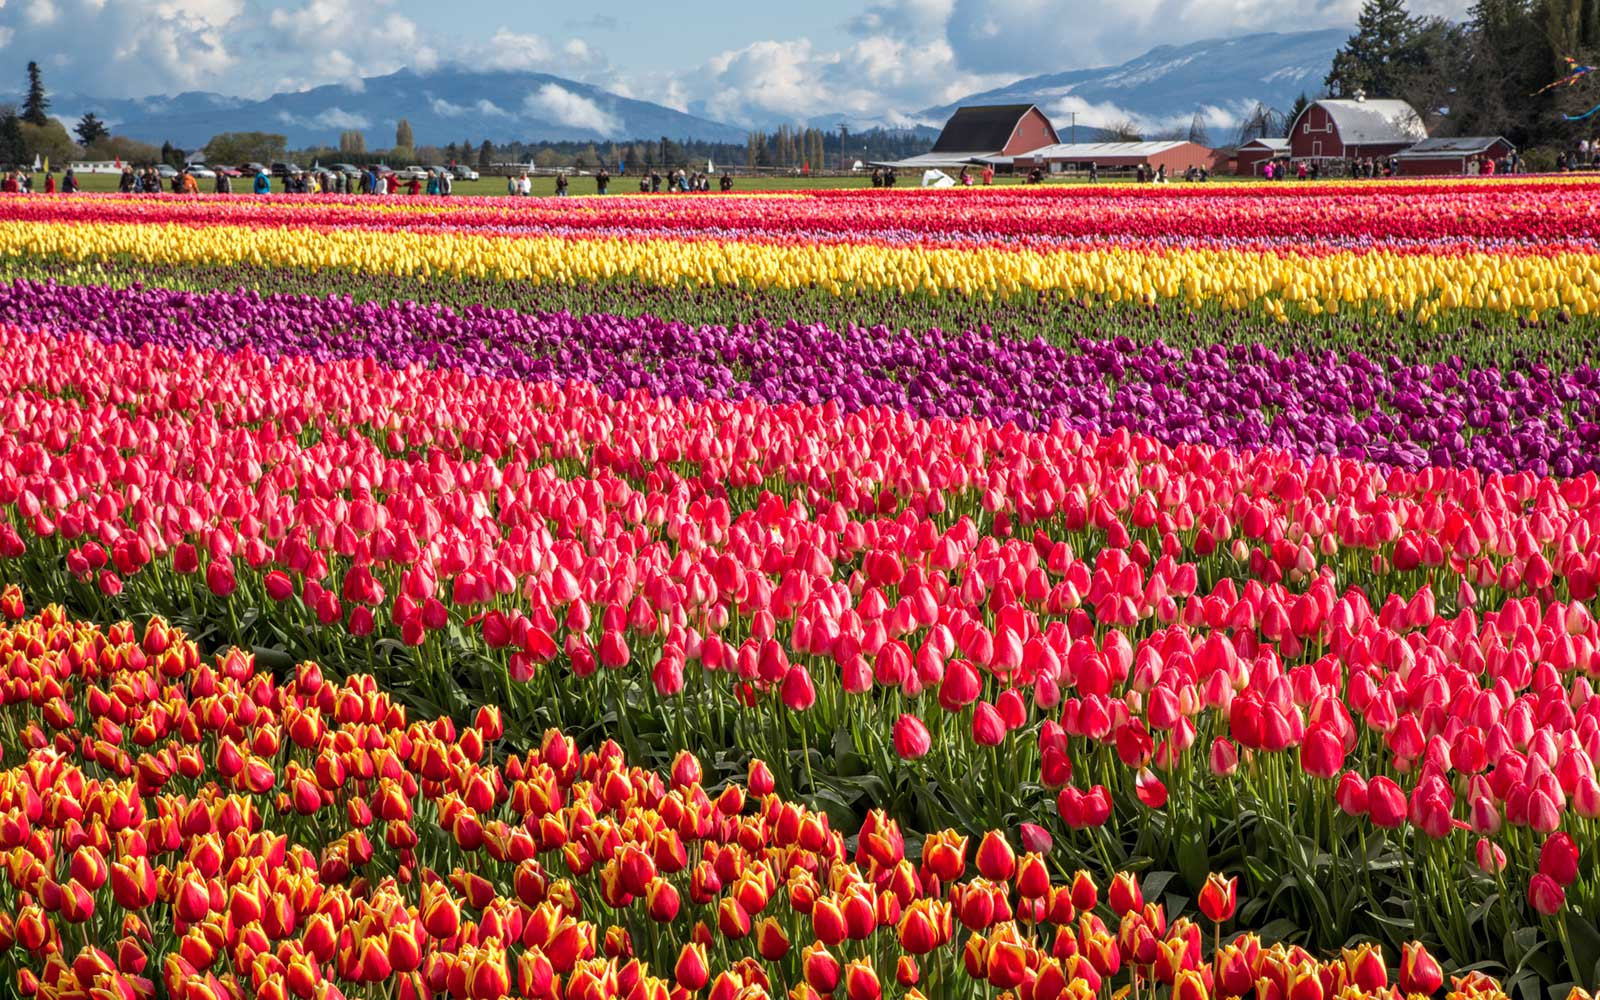 8 Best Spring and Summer Flower Festivals In the U.S.